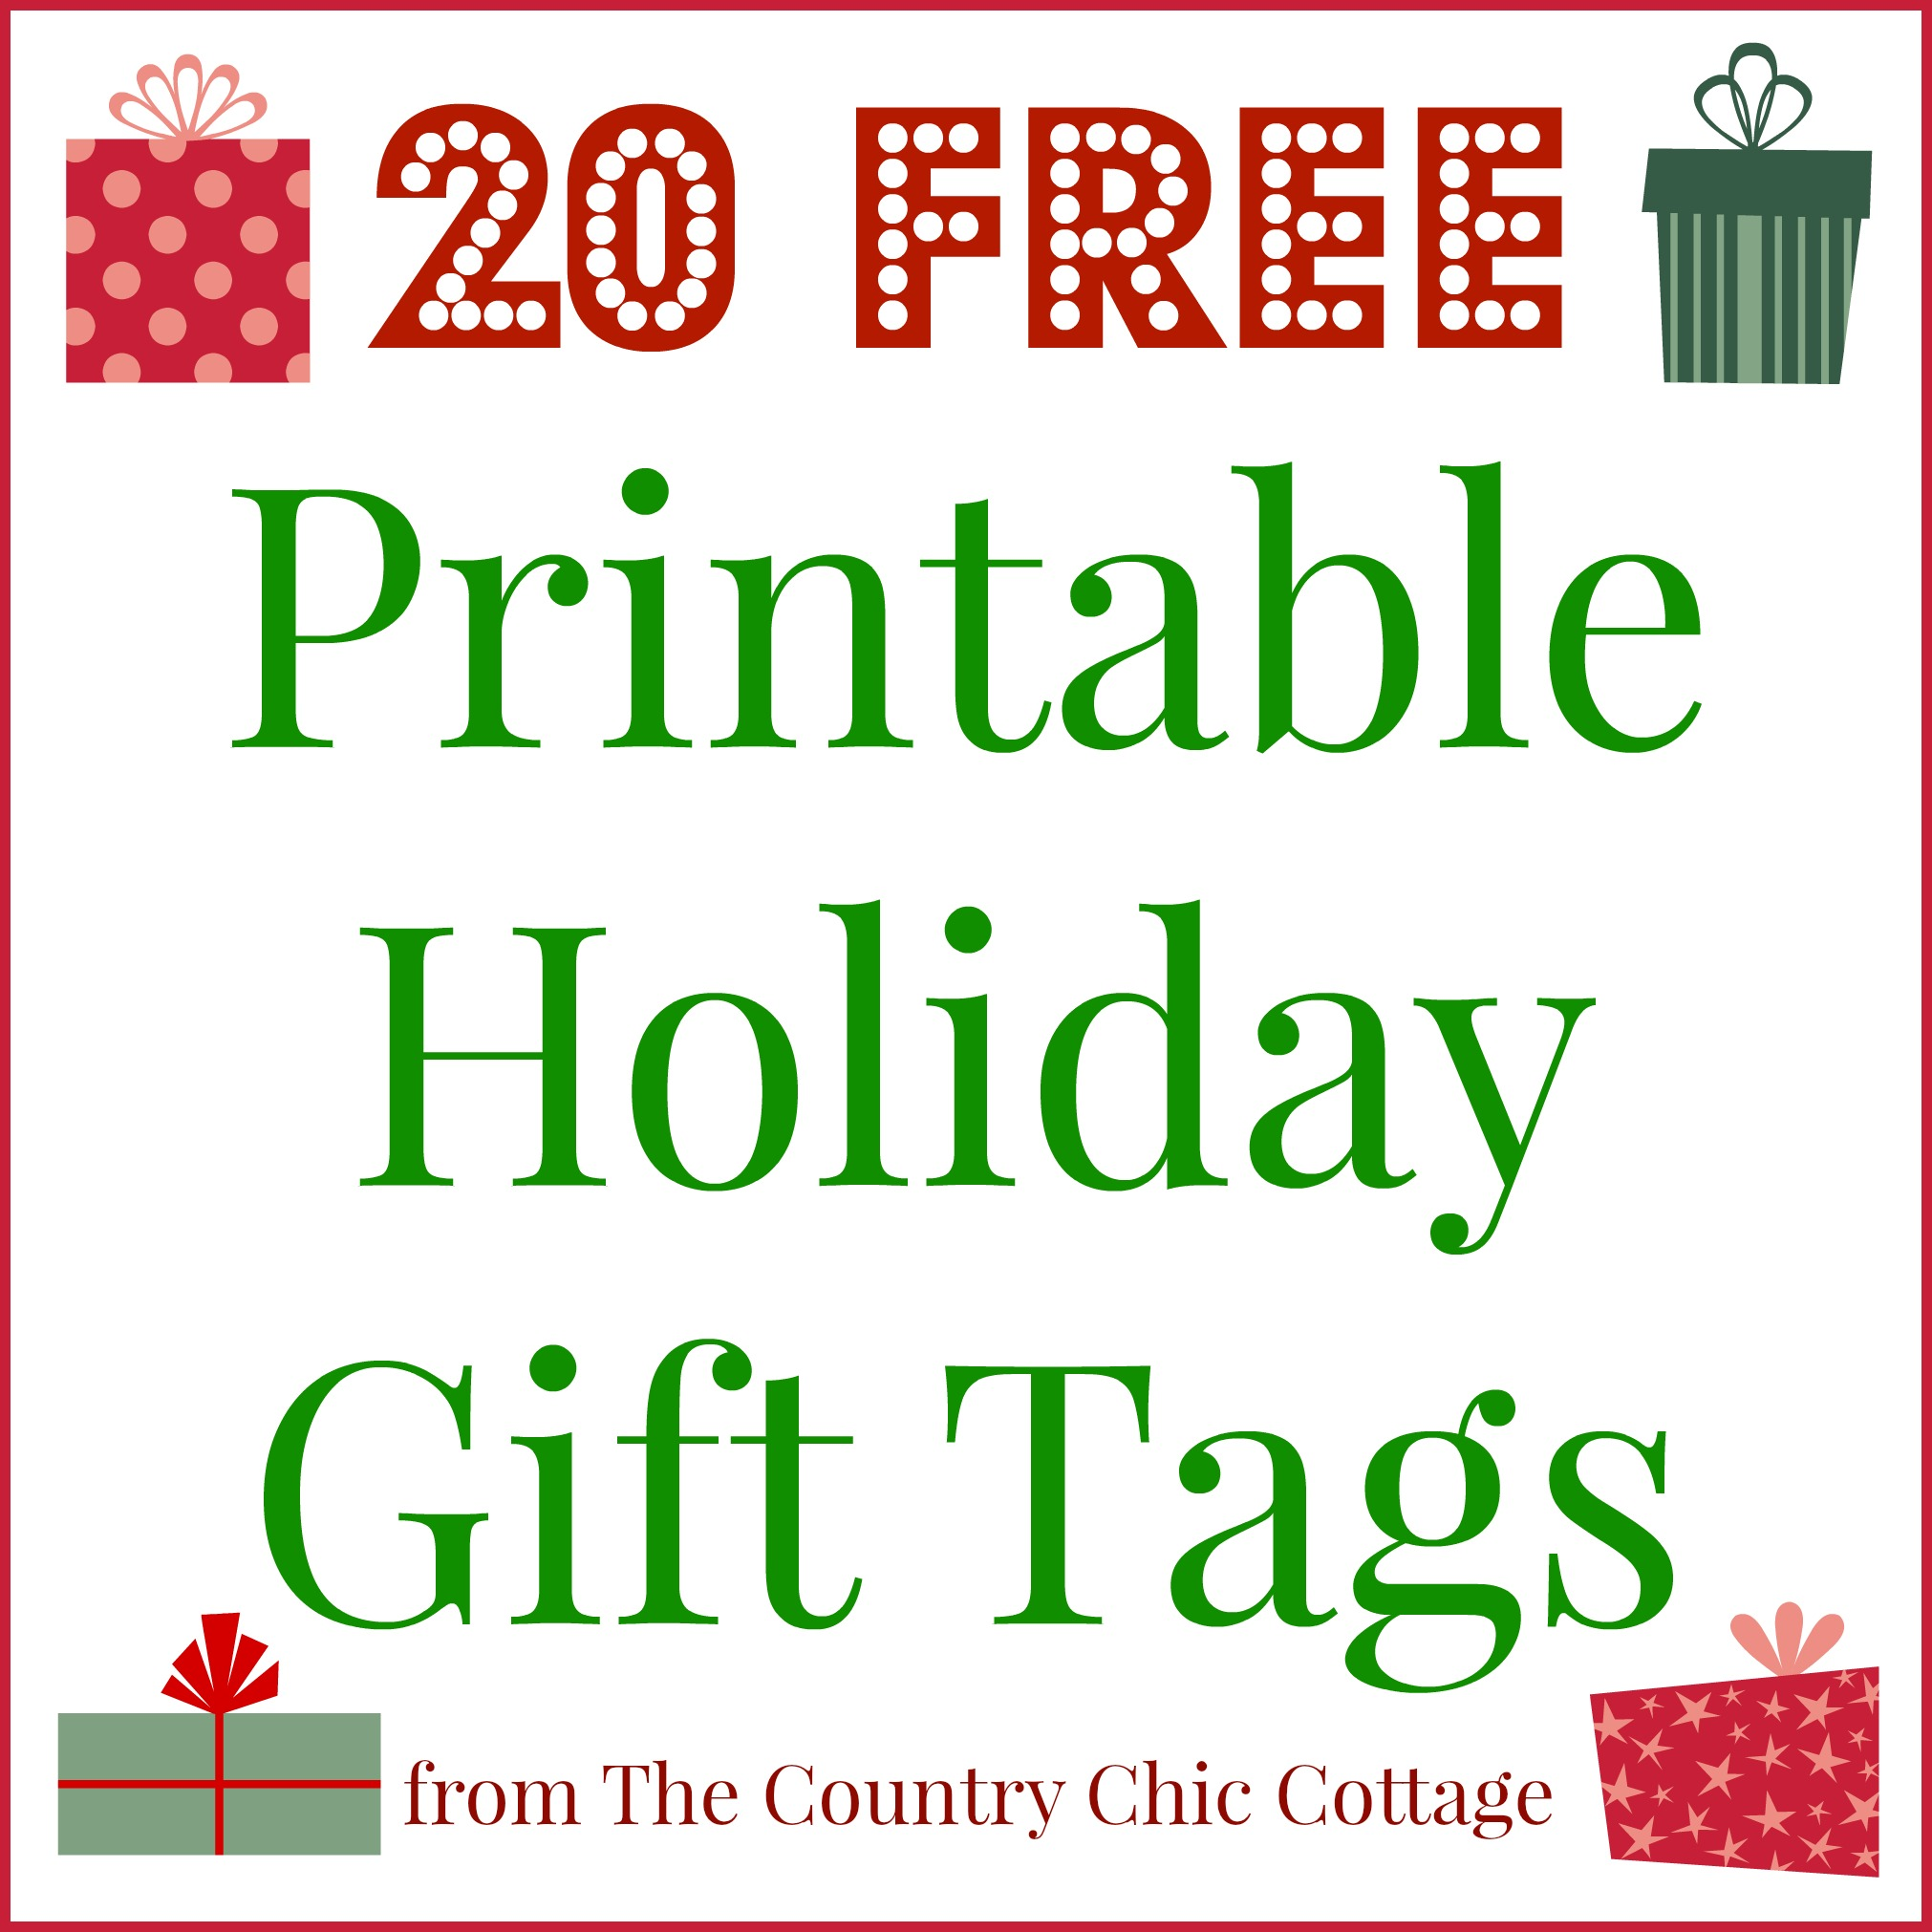 photograph relating to Free Christmas Tag Printable named 20 Printable Holiday vacation Present Tags (FOR Totally free!!) - The Place